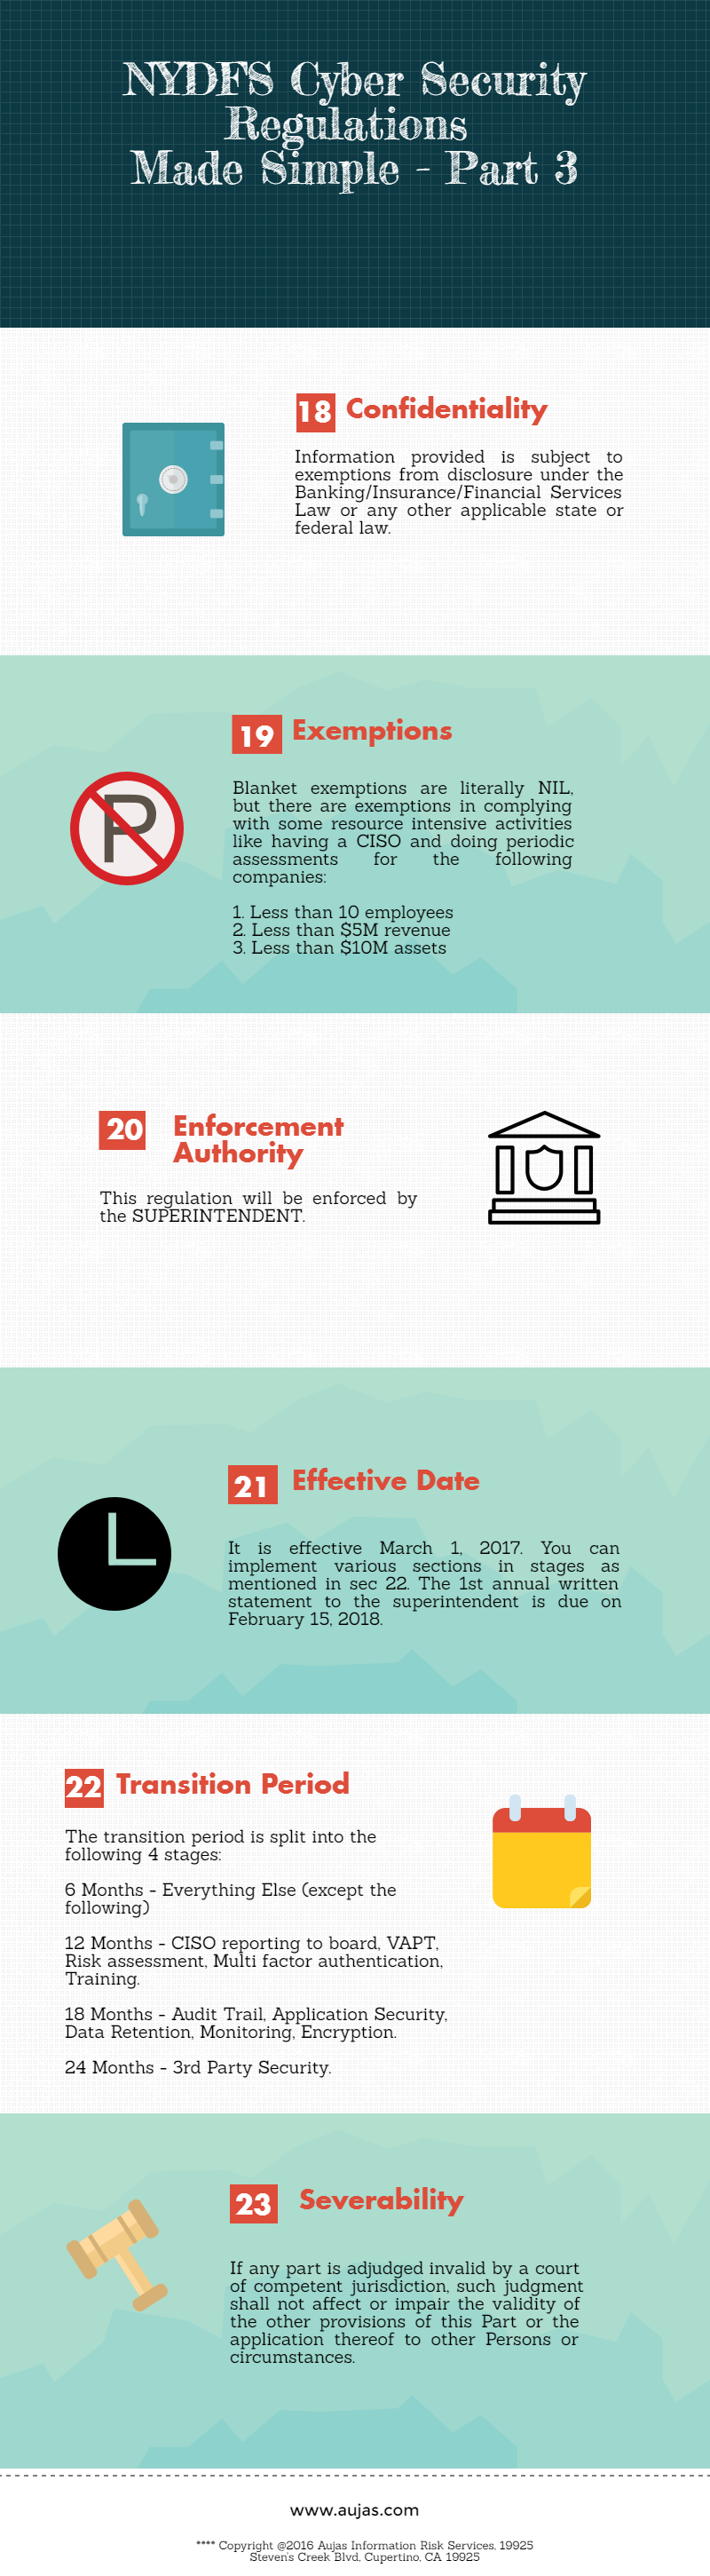 NYDFS-cyber-security-regulations-made-easy-part-3-v2-2.png